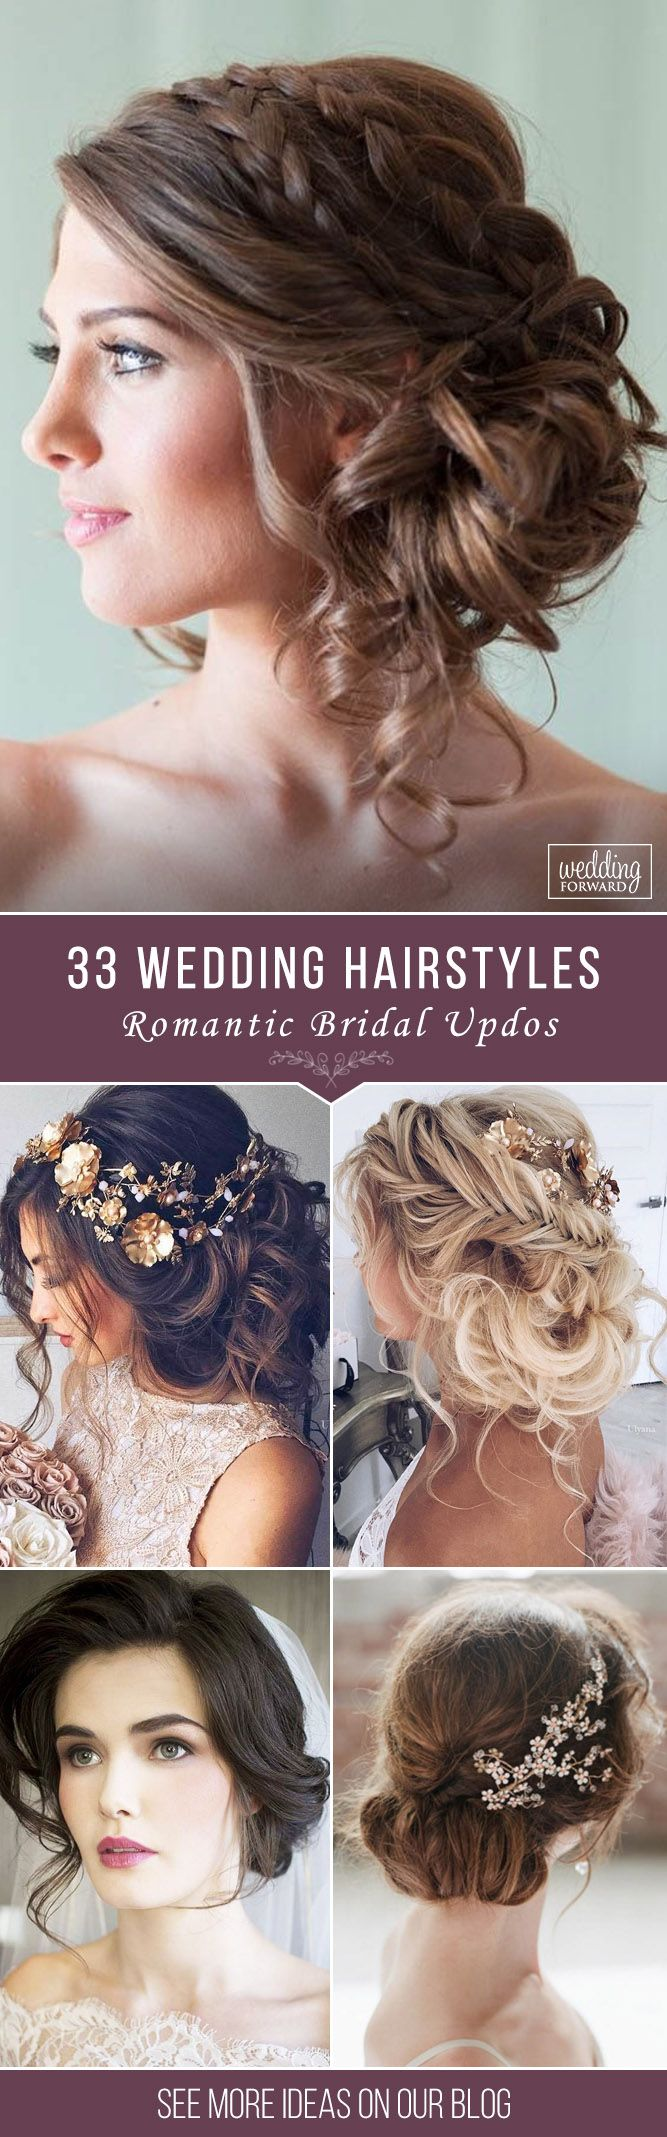 33 Wedding Hairstyles - Romantic Bridal Updos ❤ From high-volume braids to sof...